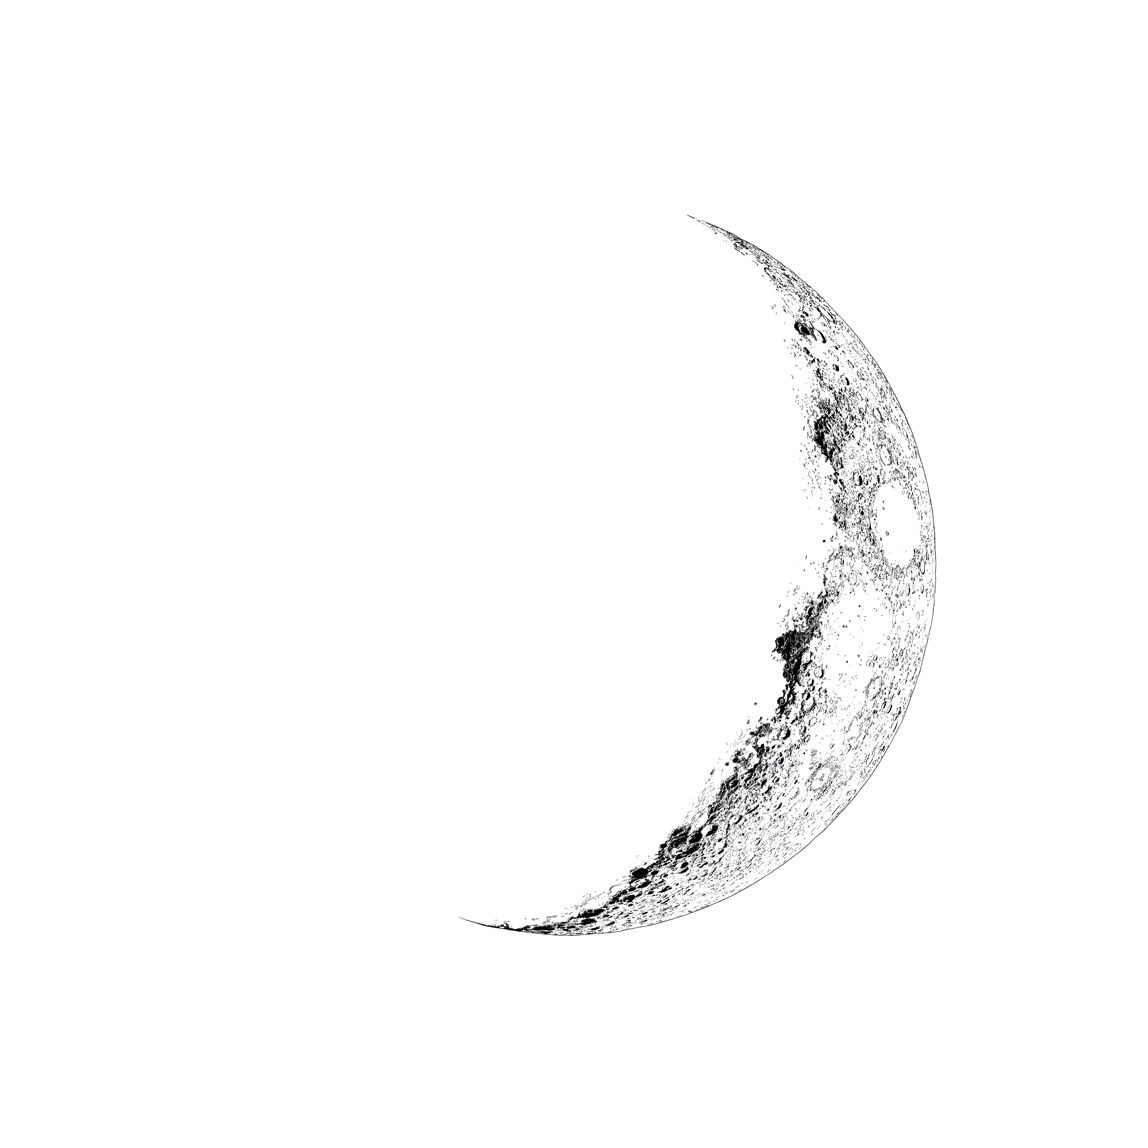 luna draw crescent moon drawing google search crescent moon luna draw